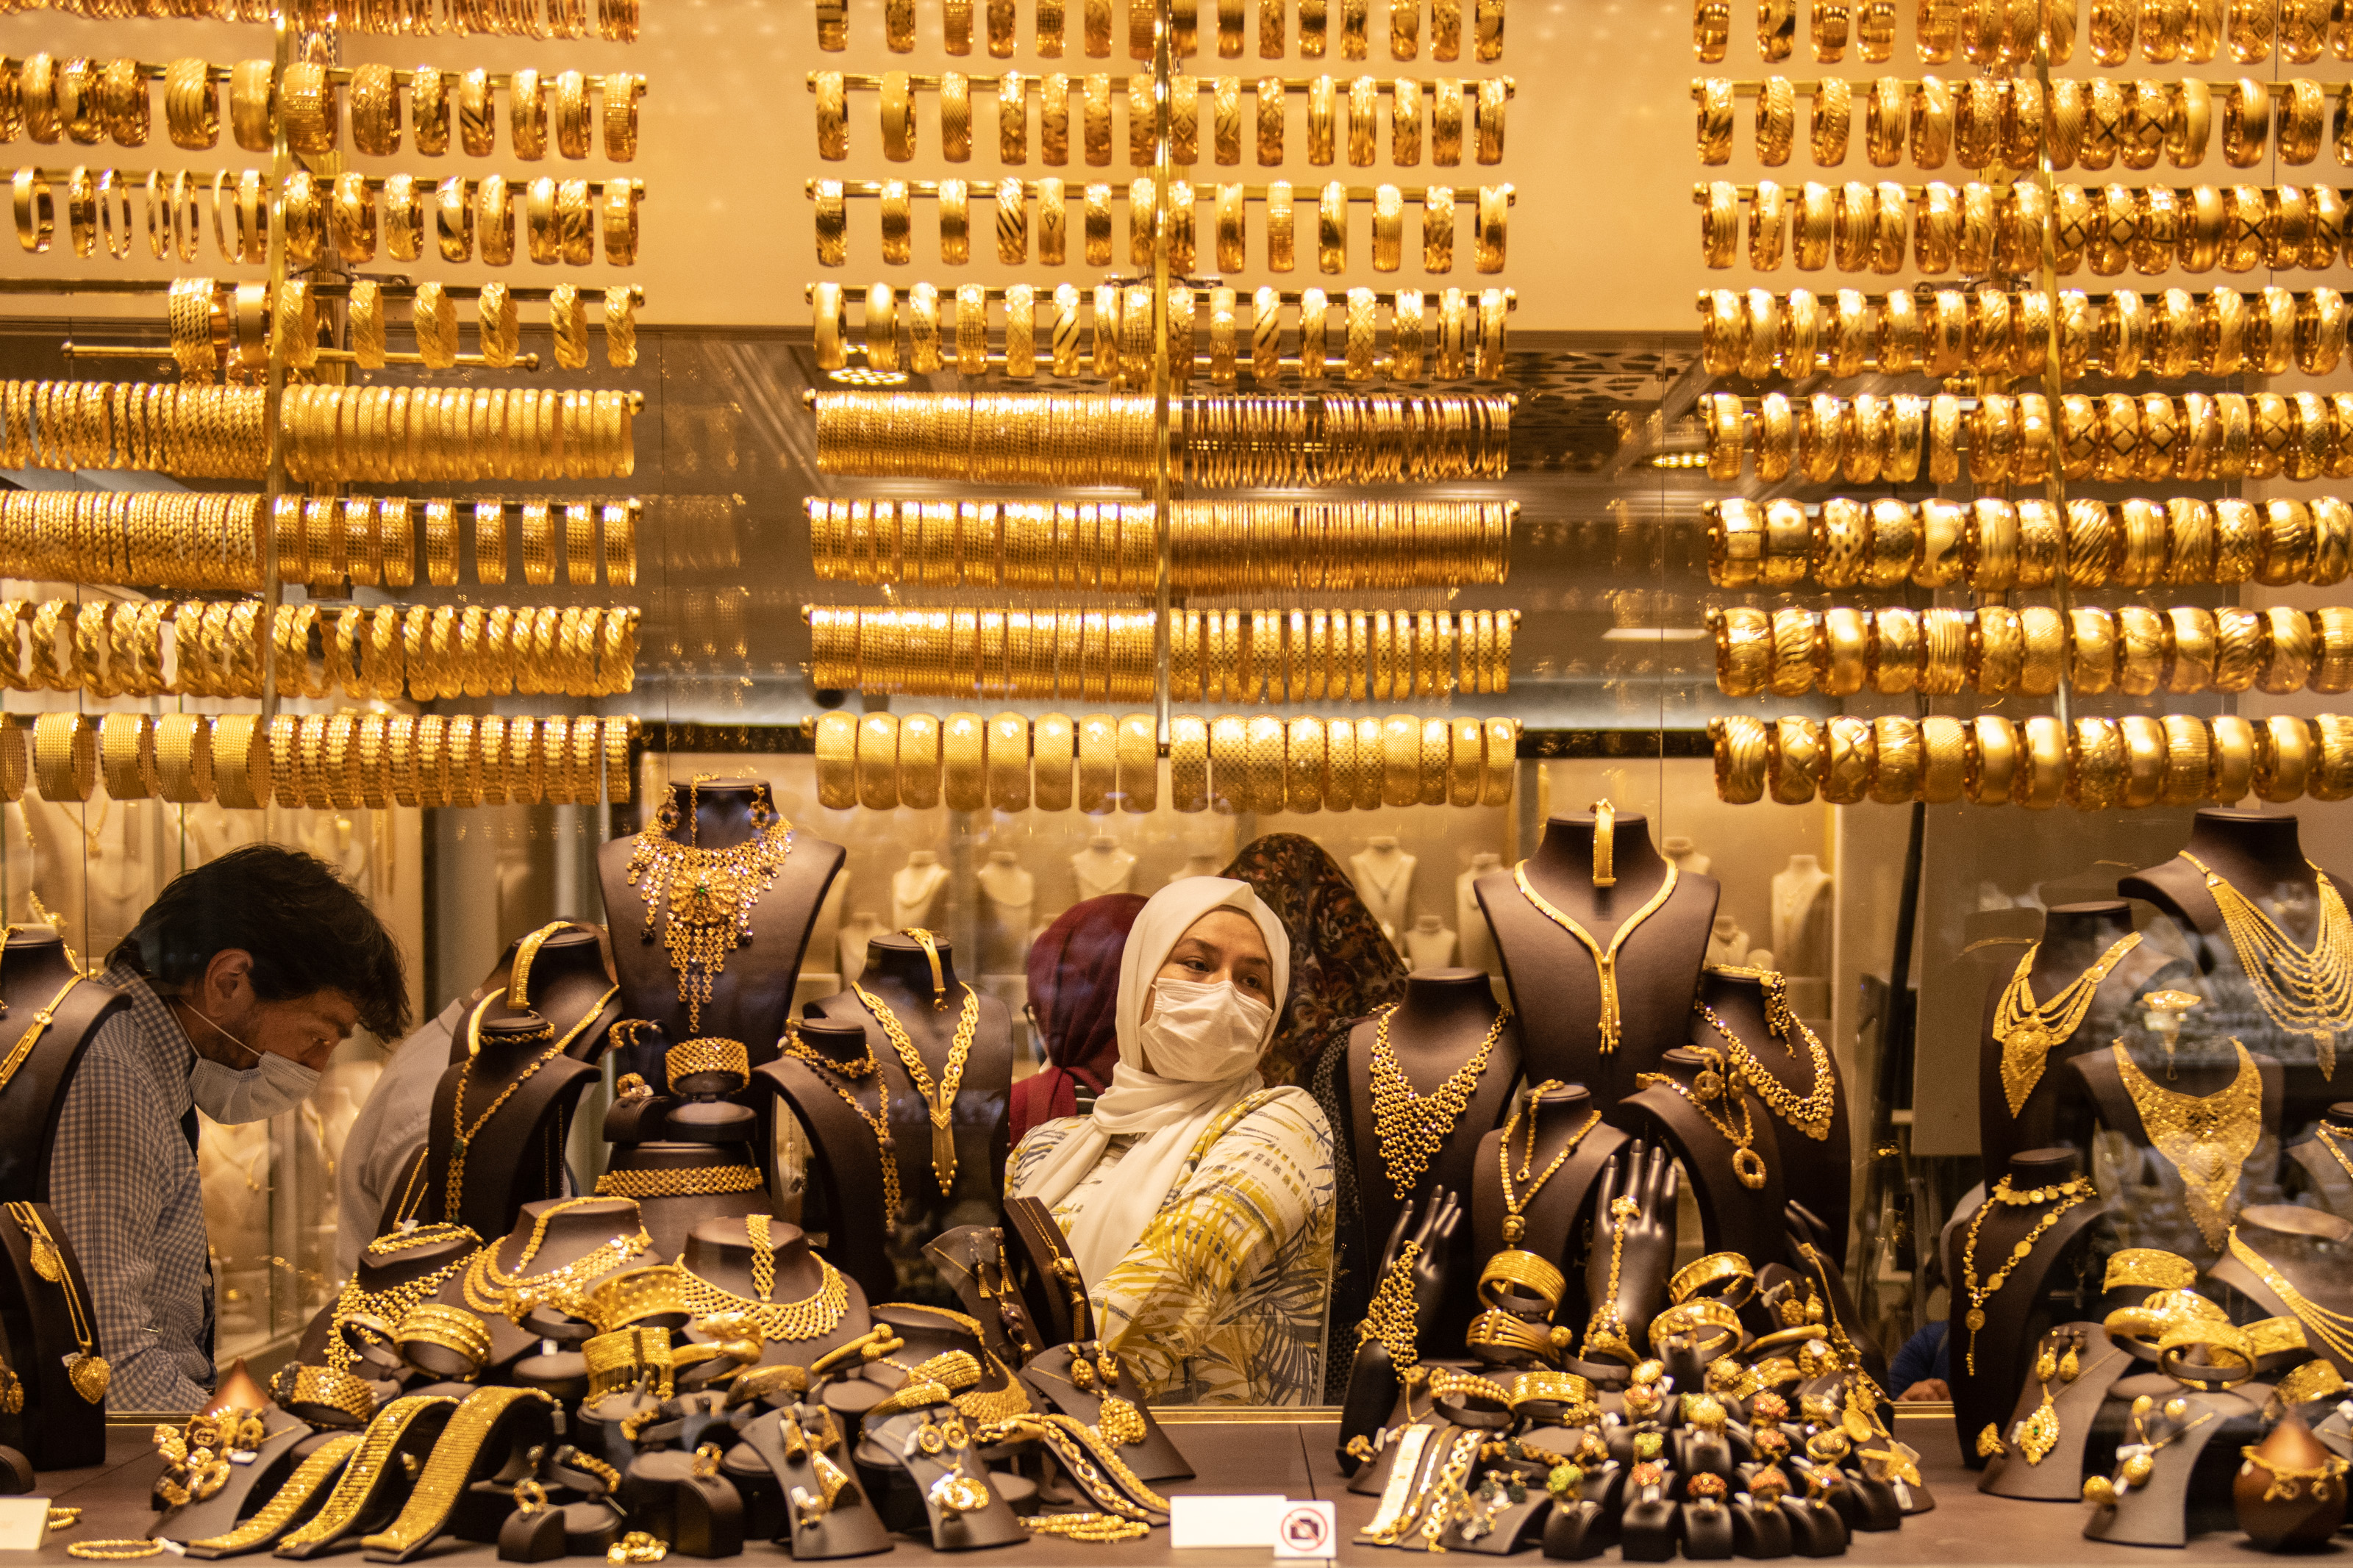 A gold rush means nothing good for this economy